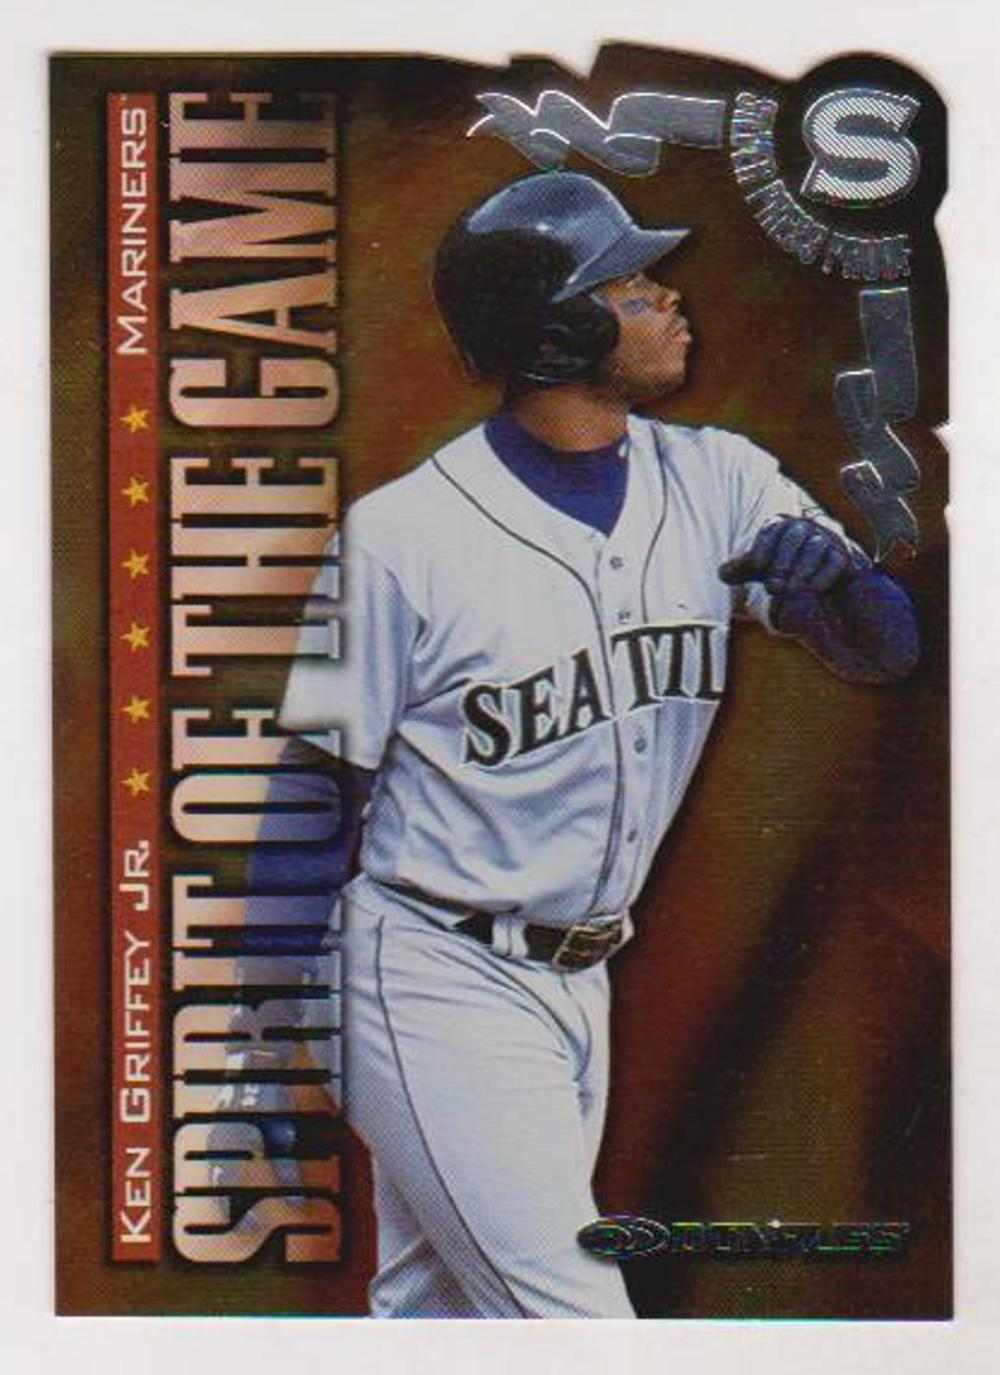 1998 Donruss Silver Press Proof Ken Griffey, Jr. #386 Insert Card (1 of 1500)